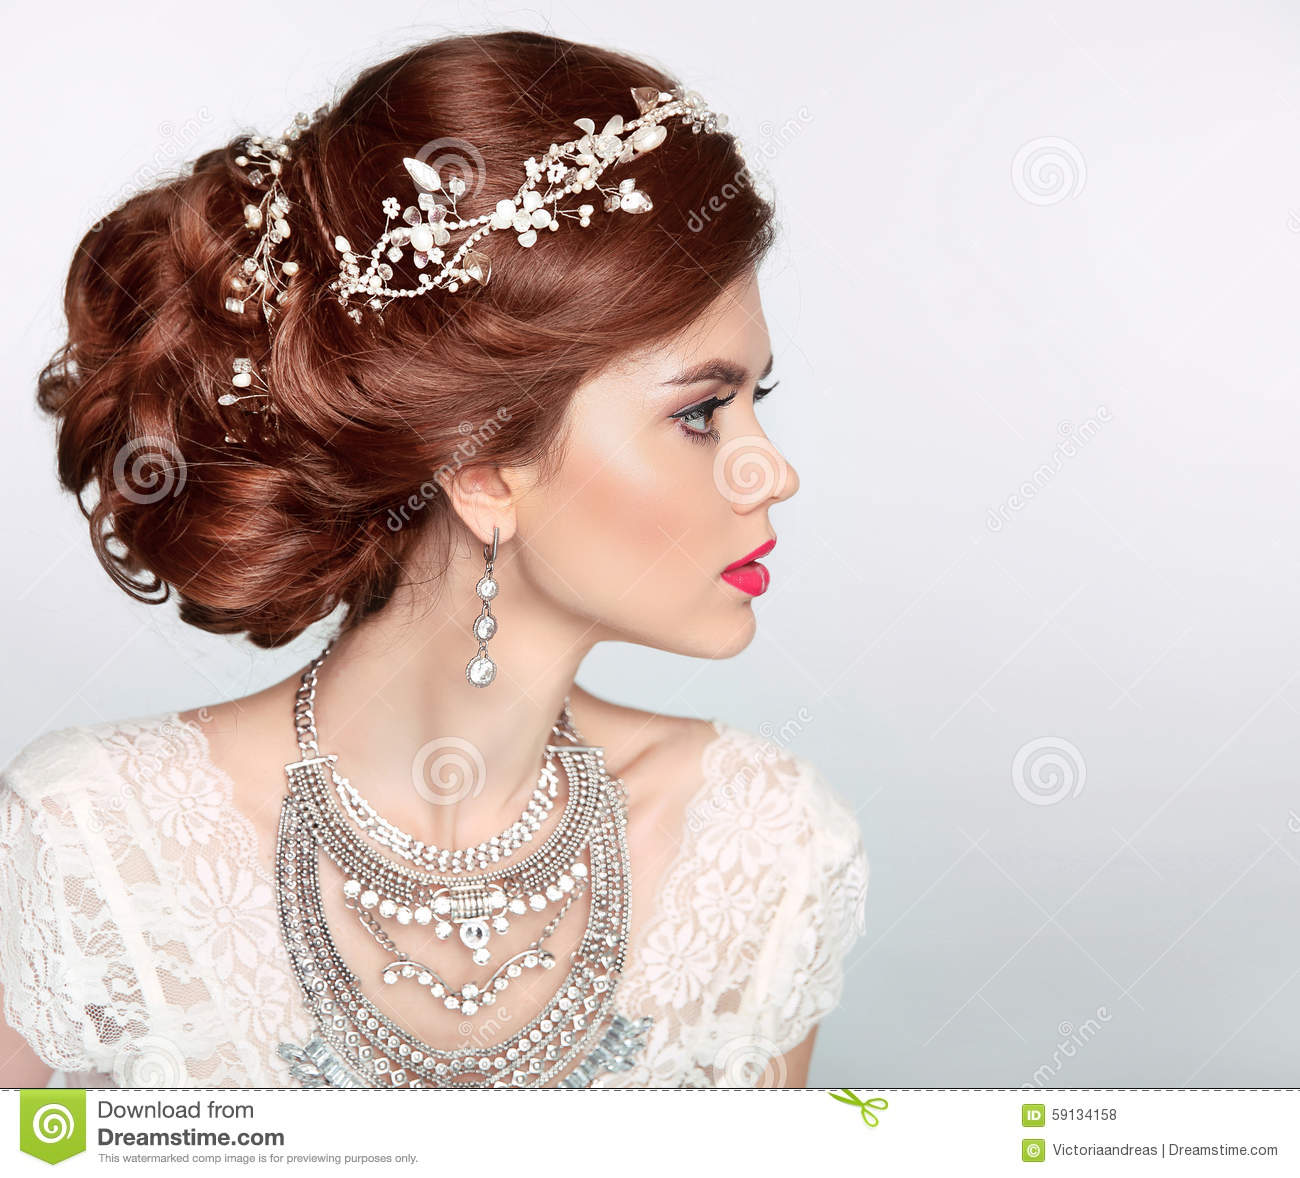 Wedding Hairstyle Beautiful Fashion Bride Girl Model Portrait